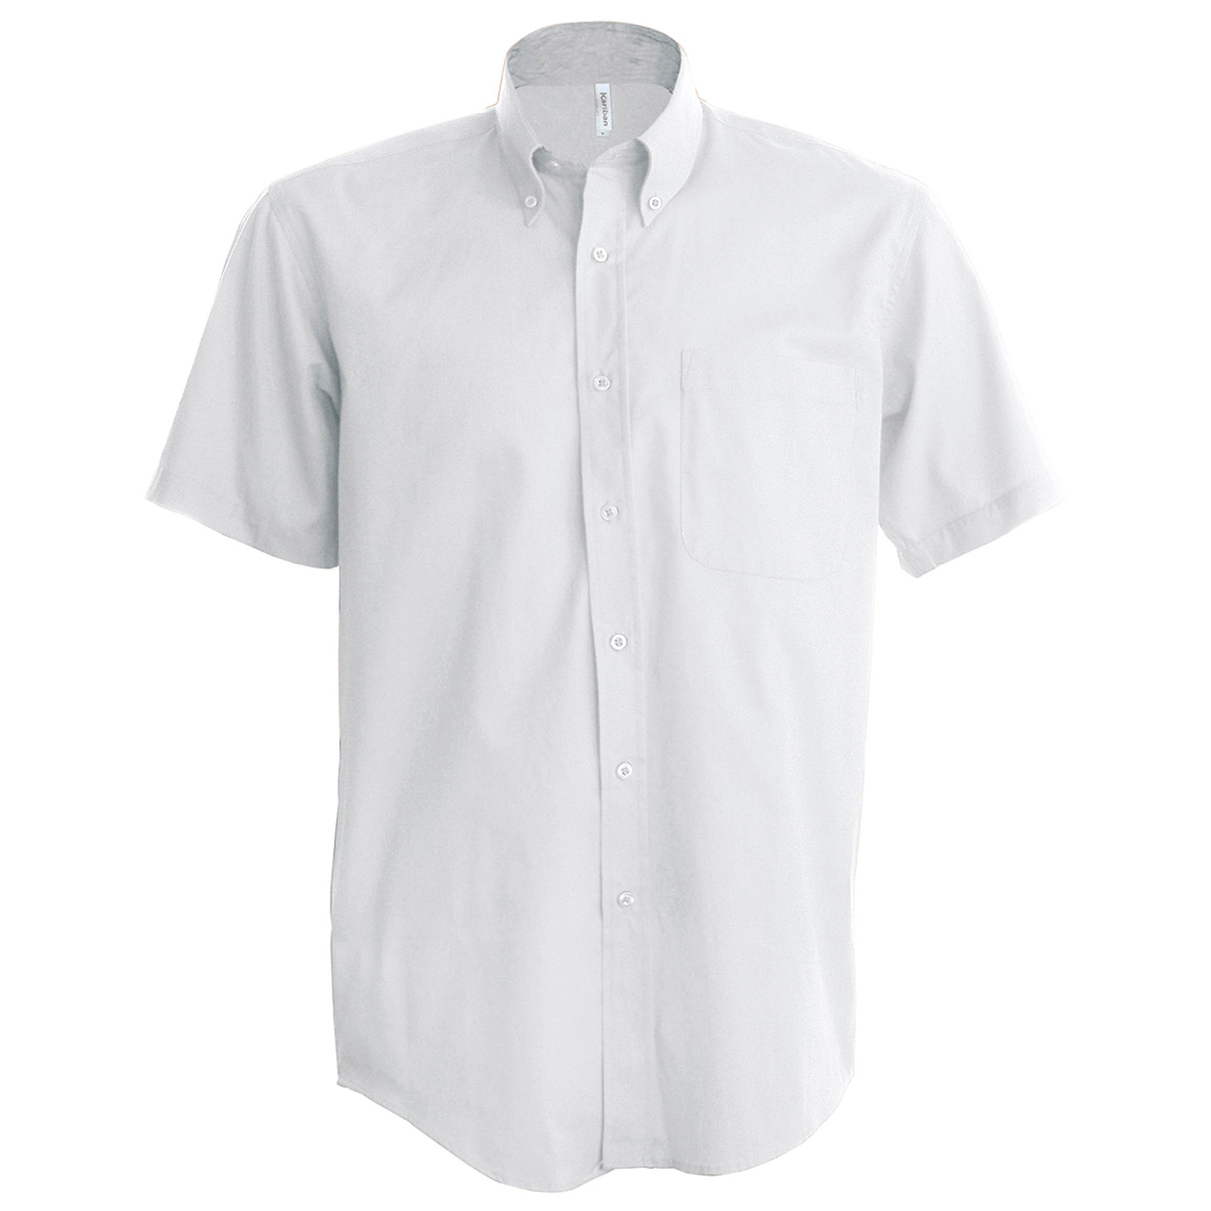 Kariban Mens Short Sleeve Easy Care Oxford Shirt (5XL) (White)